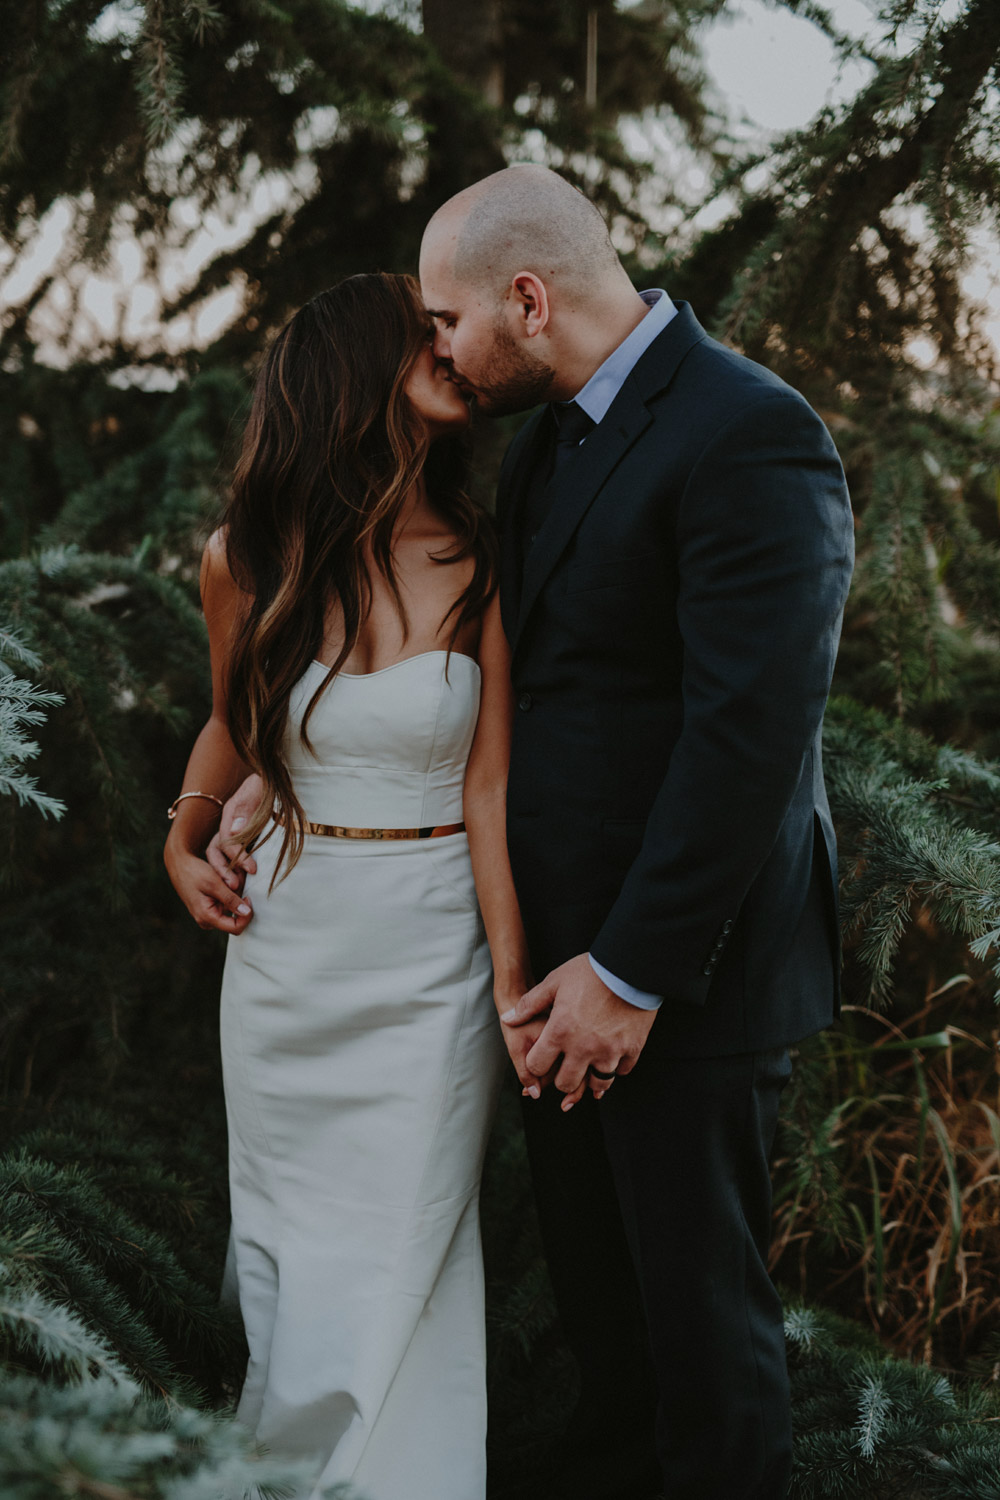 Greg-Petersen-San-Francisco-Wedding-Photographer-1-79.jpg